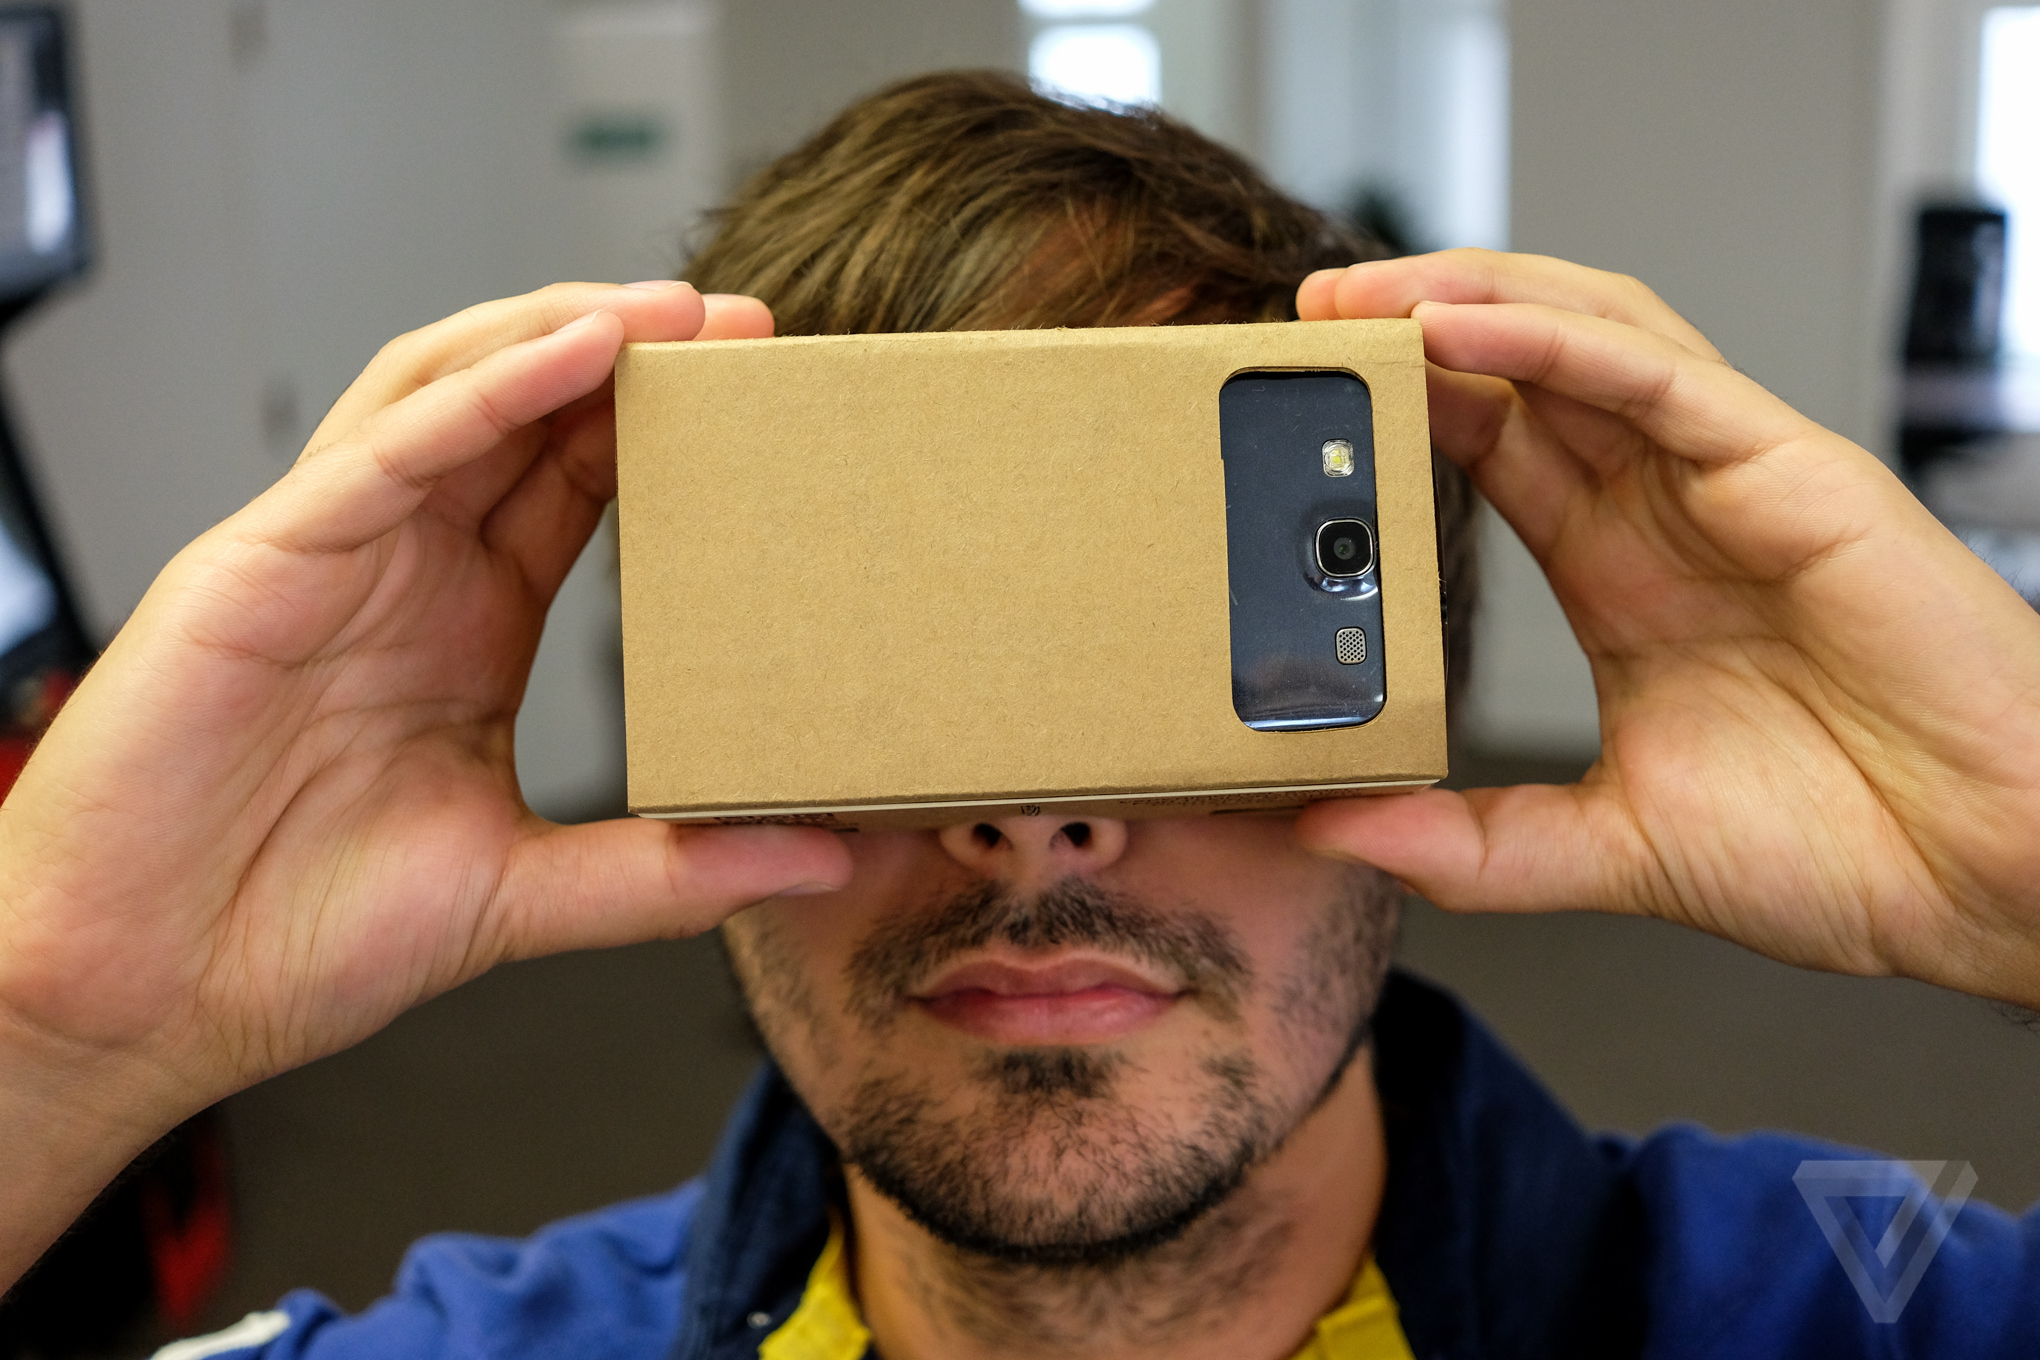 Google throws its weight behind cheap Cardboard virtual reality